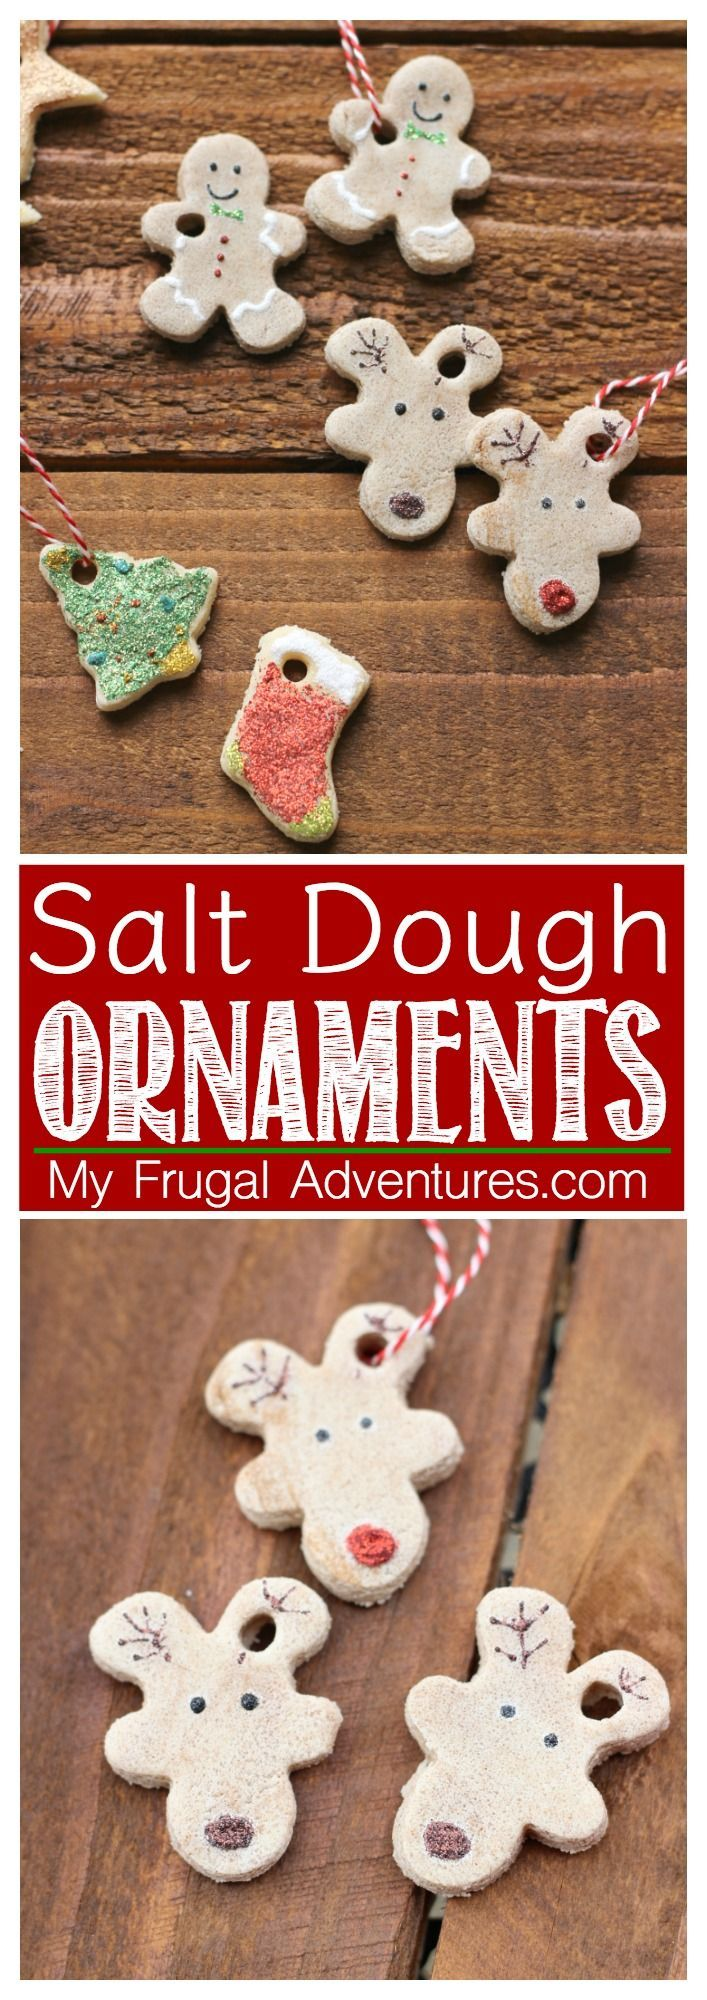 Salt Dough ornaments or gift tags for Christmas- such an adorable handmade holiday craft or children's craft.